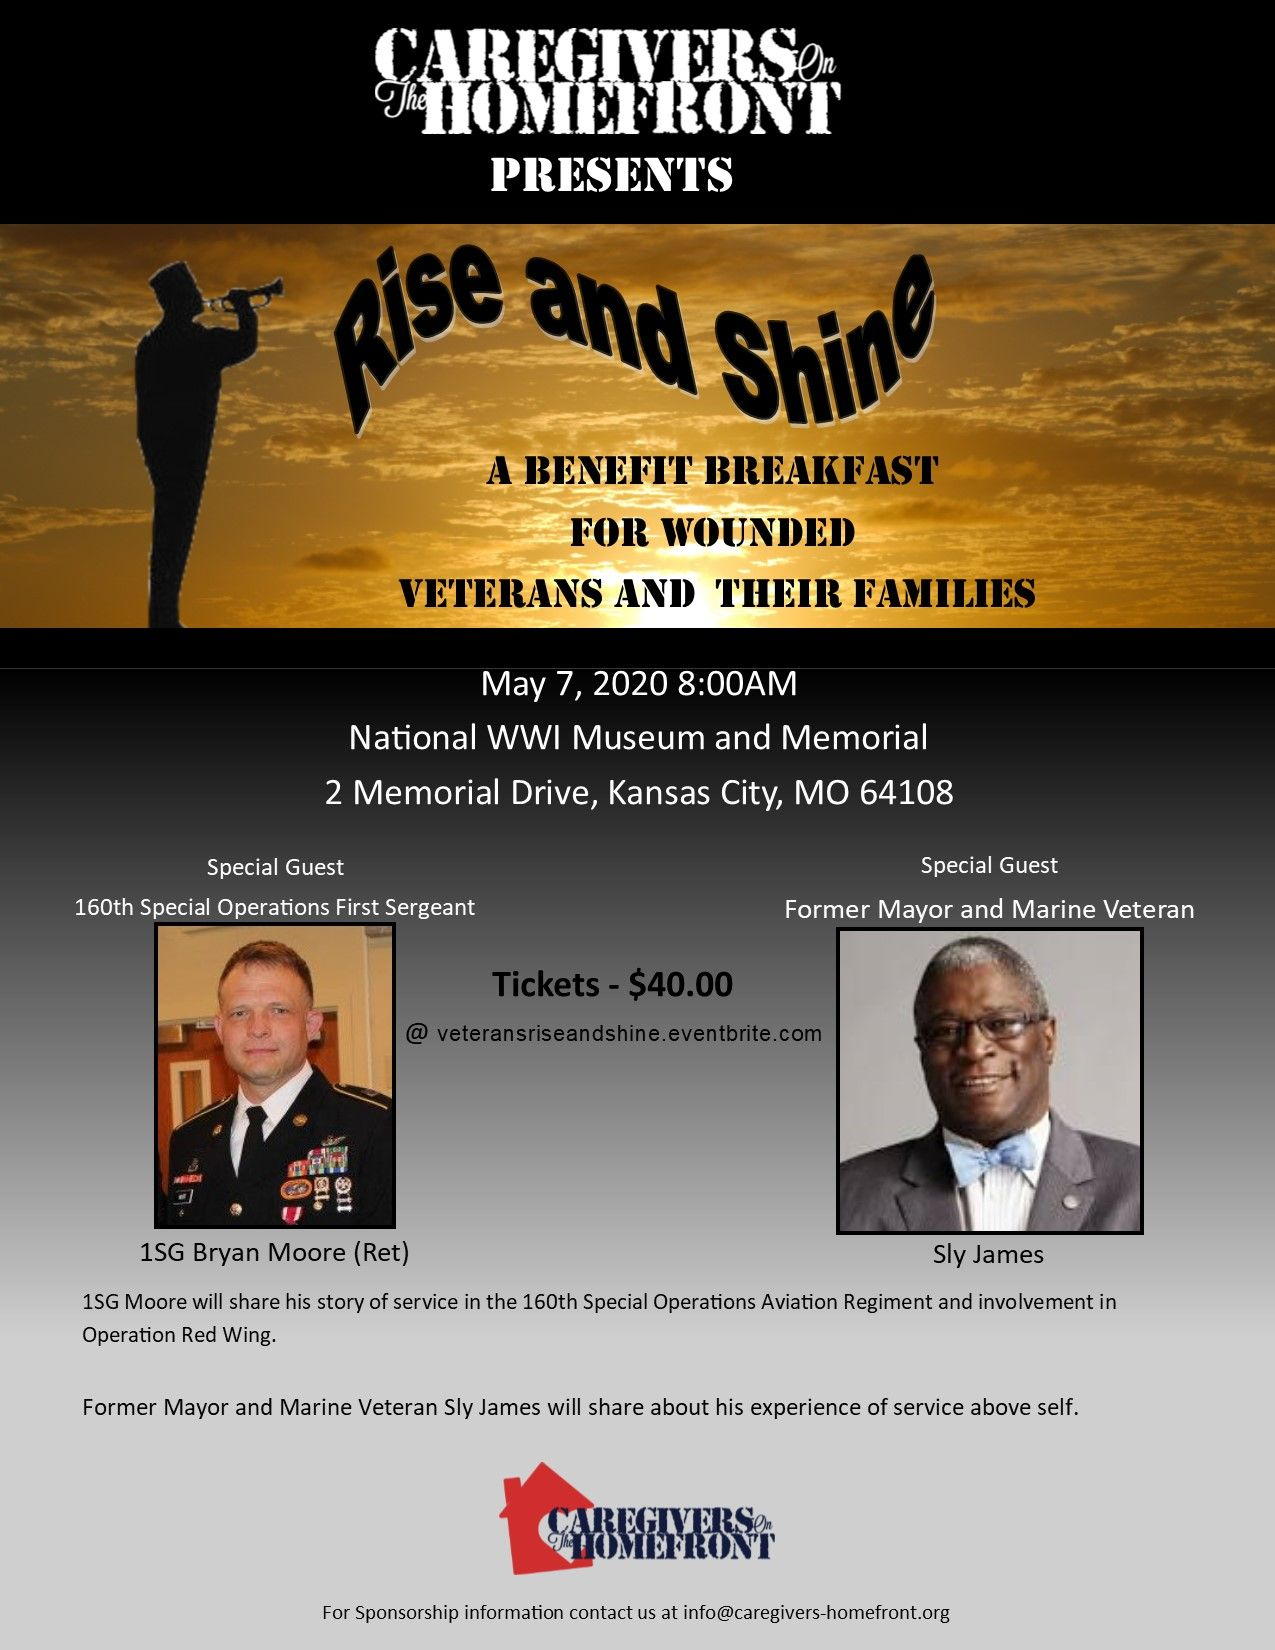 Rise and Shine Breakfast Benefit for Veterans and their Families